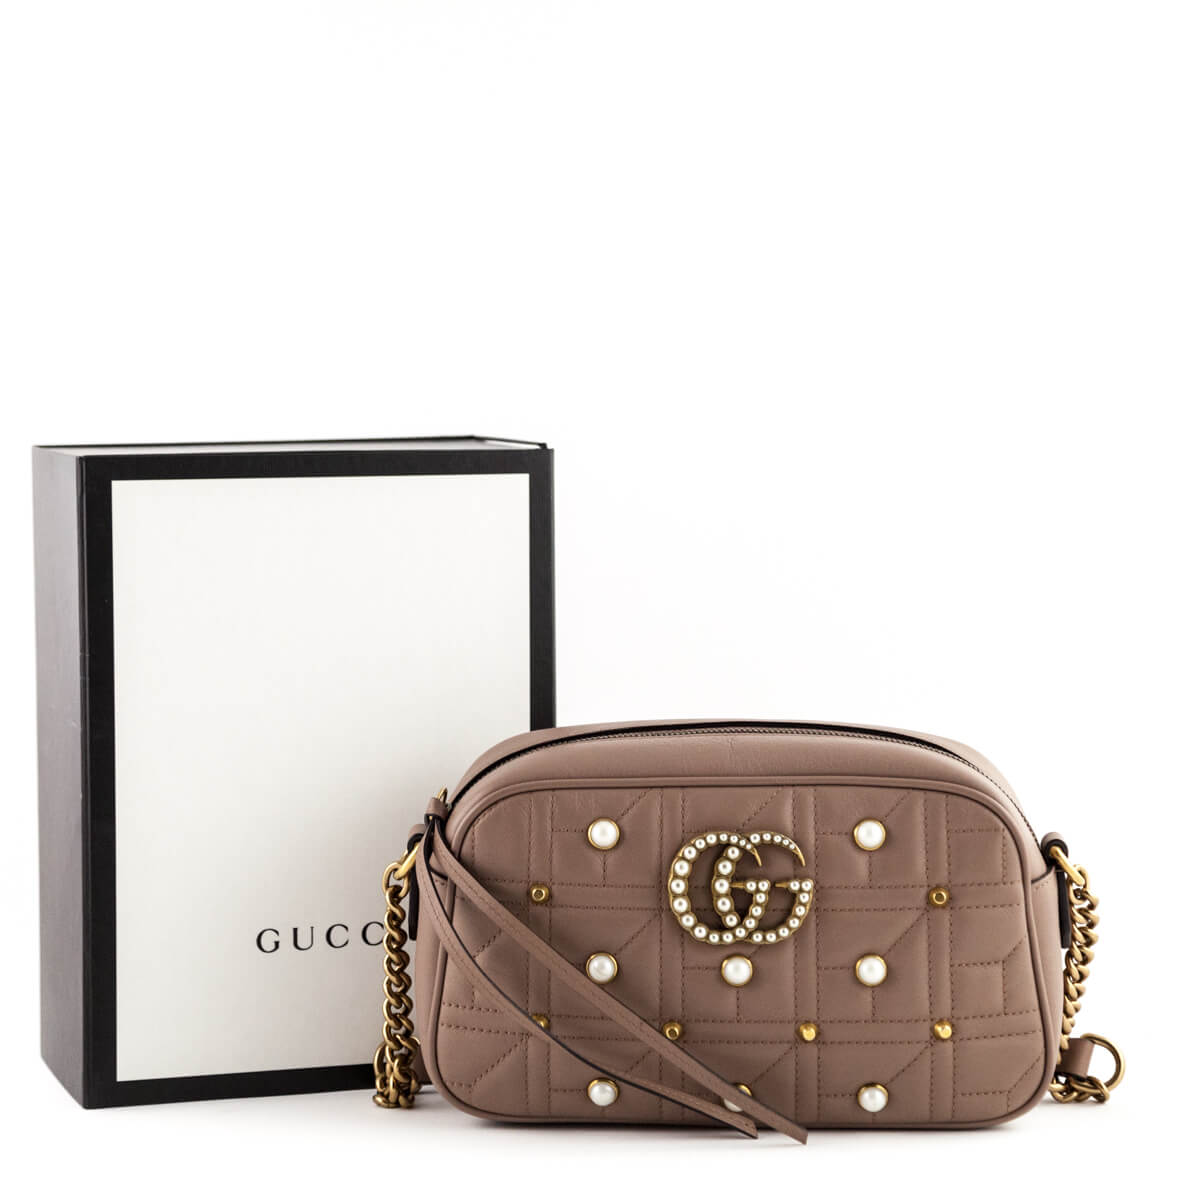 df48daae51cf ... Gucci Nude Calfskin Matelasse Small Pearl Studded GG Marmont - LOVE  that BAG - Preowned Authentic ...